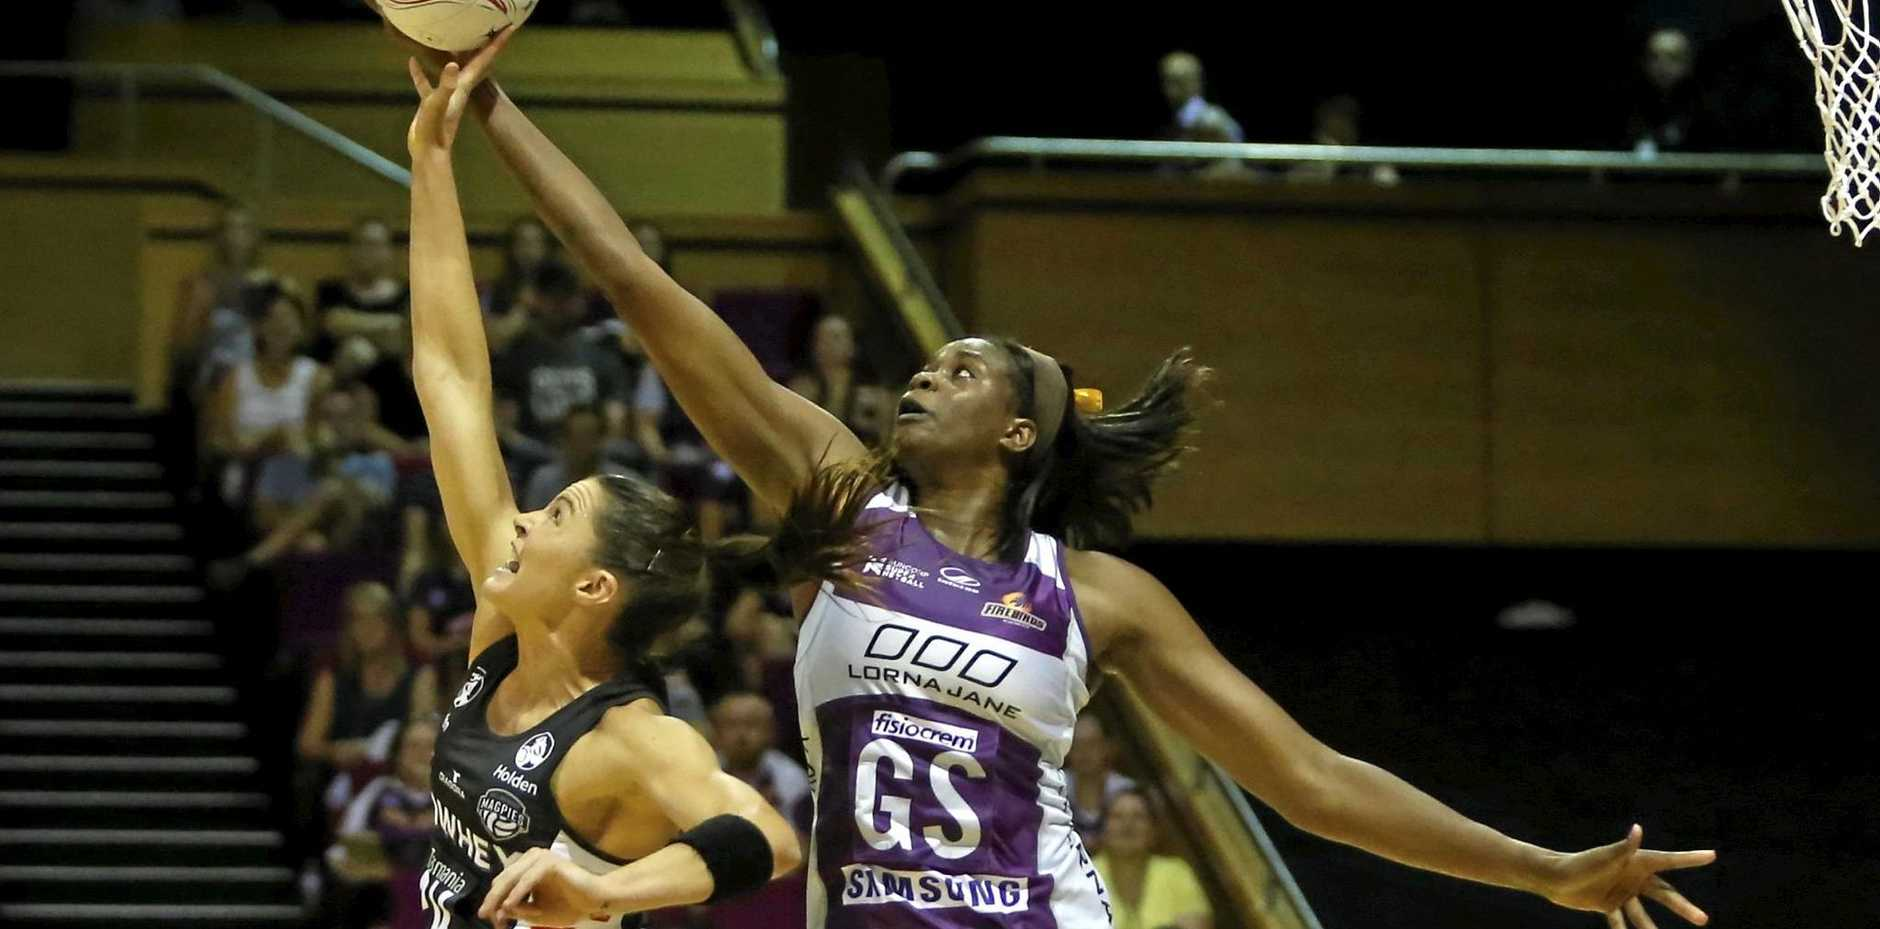 Romelda Aiken battles with Sharni Layton at the Brisbane Entertainment & Convention Centre.